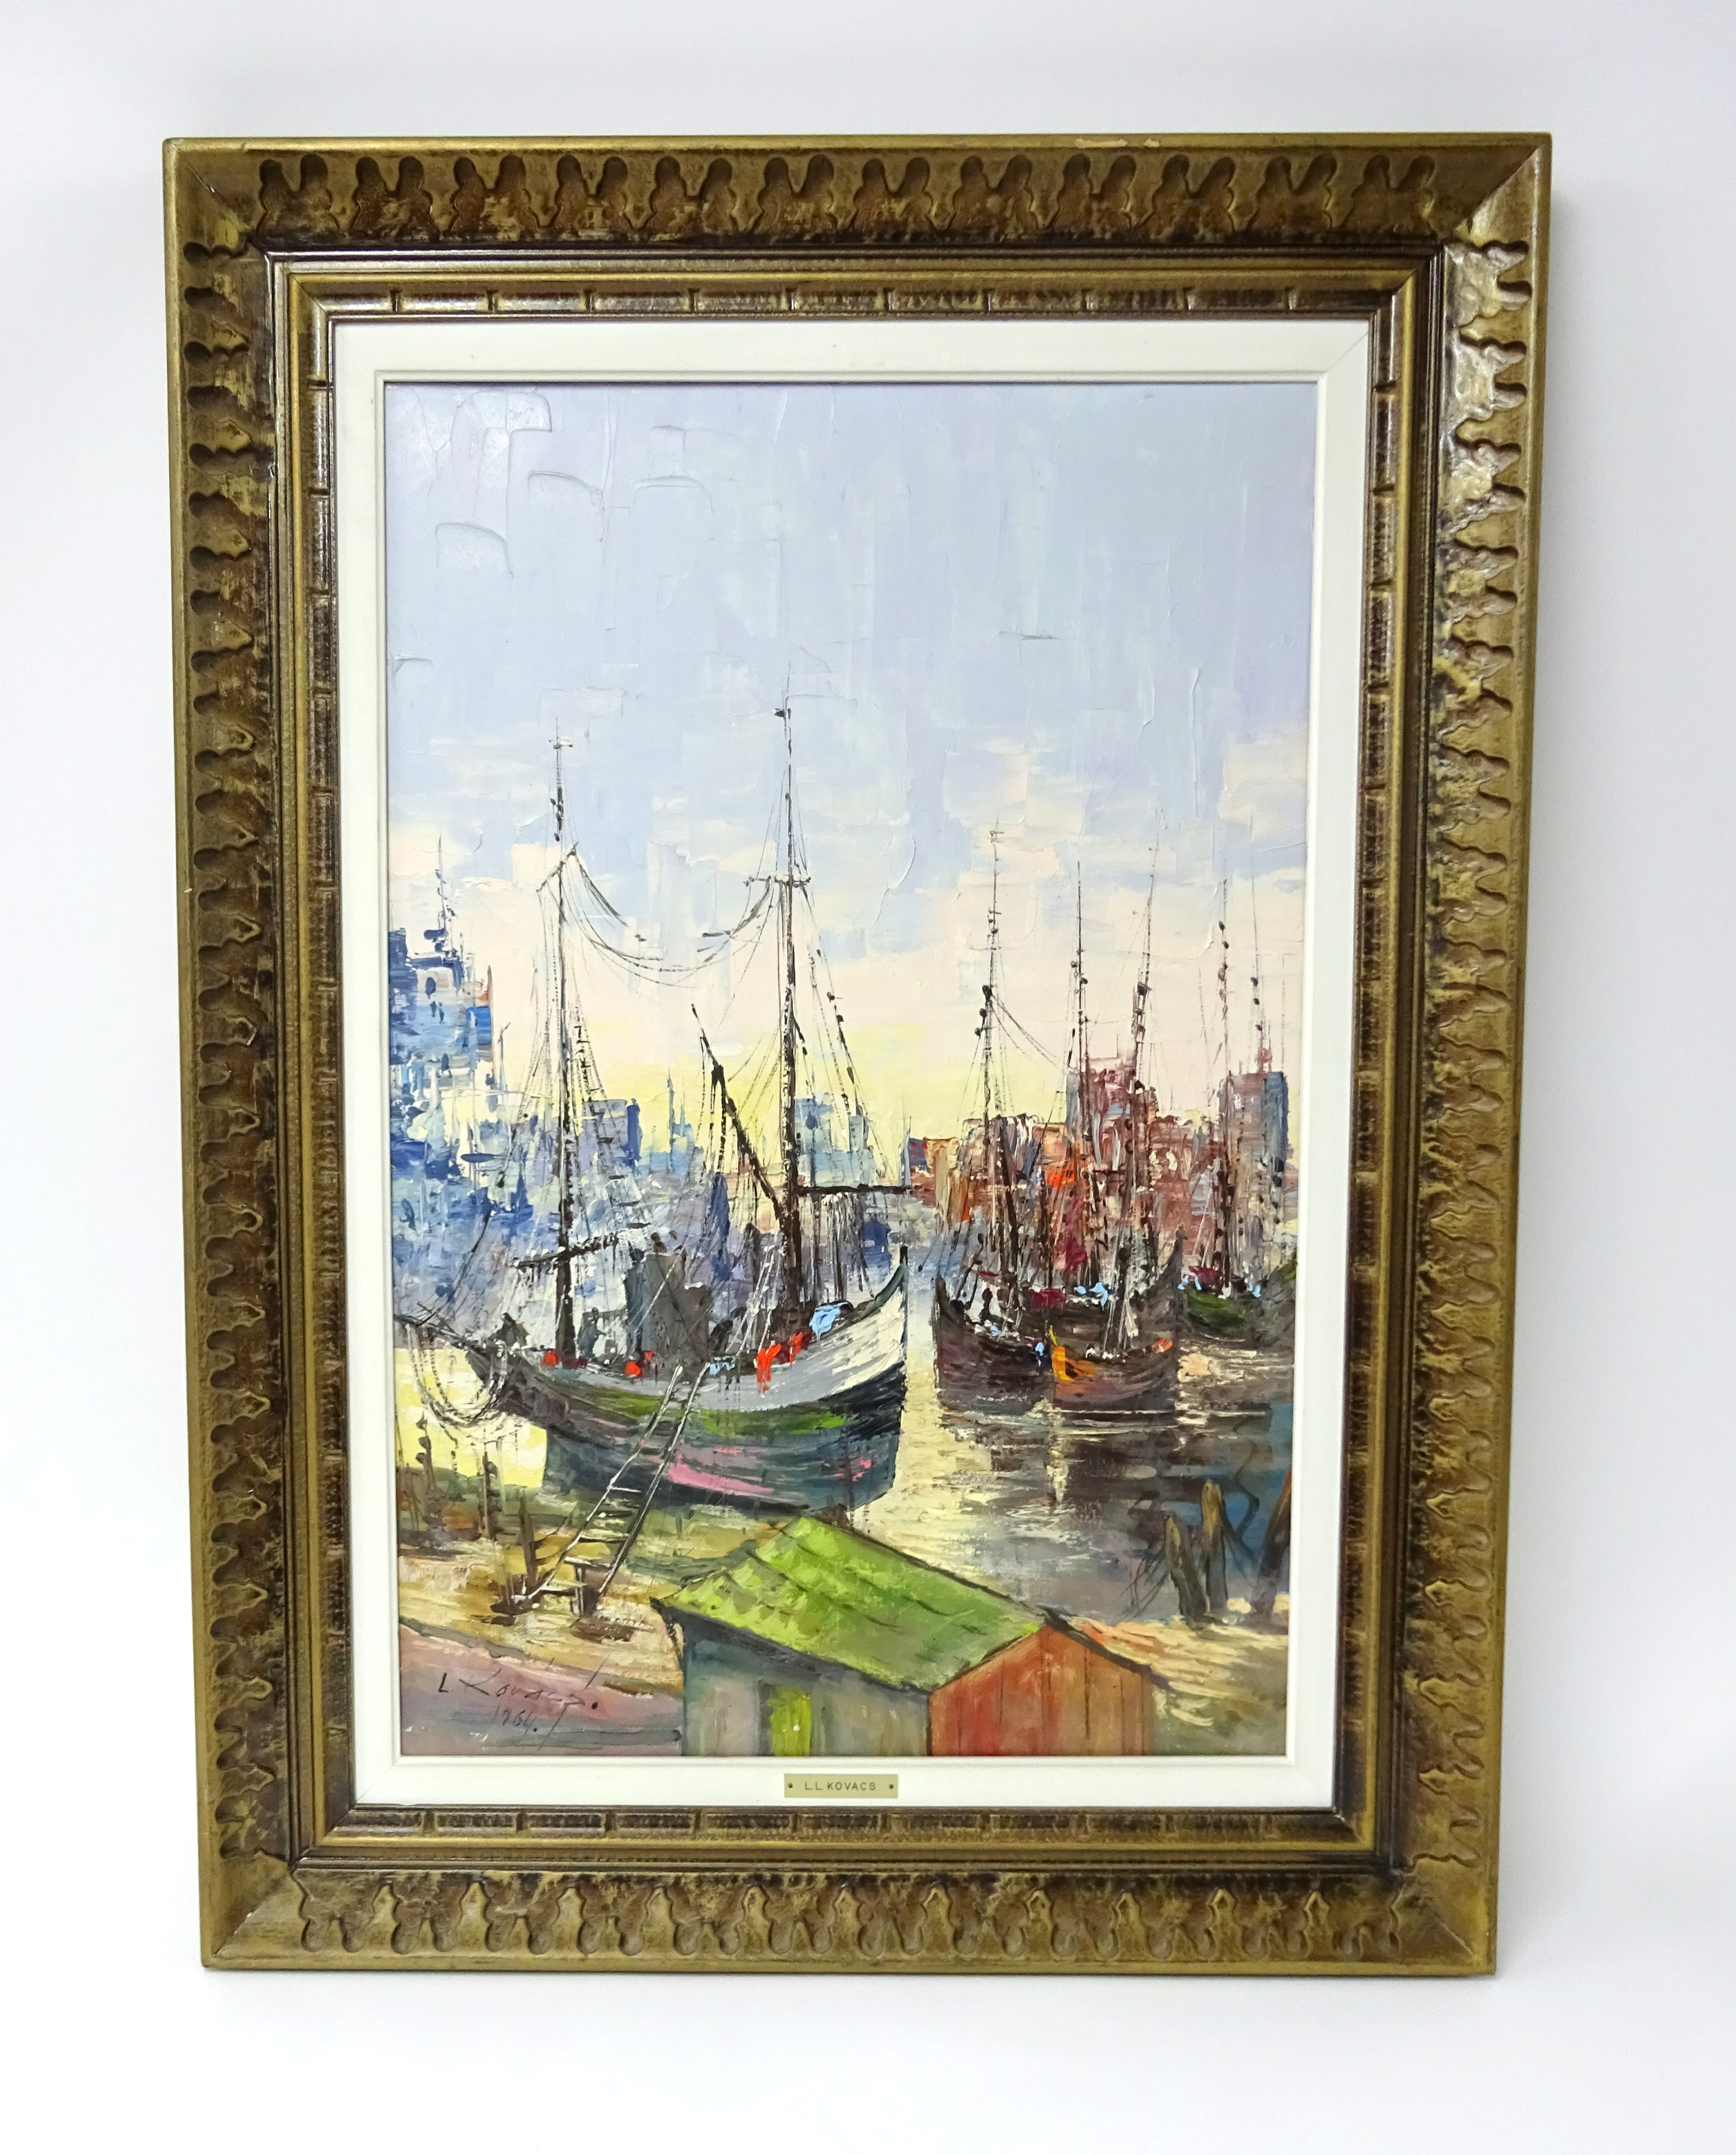 Lot 009 - Levente Kovacs (b1922), signed oil on canvas 'Boats in a harbour', framed, 76cm x 50cm.